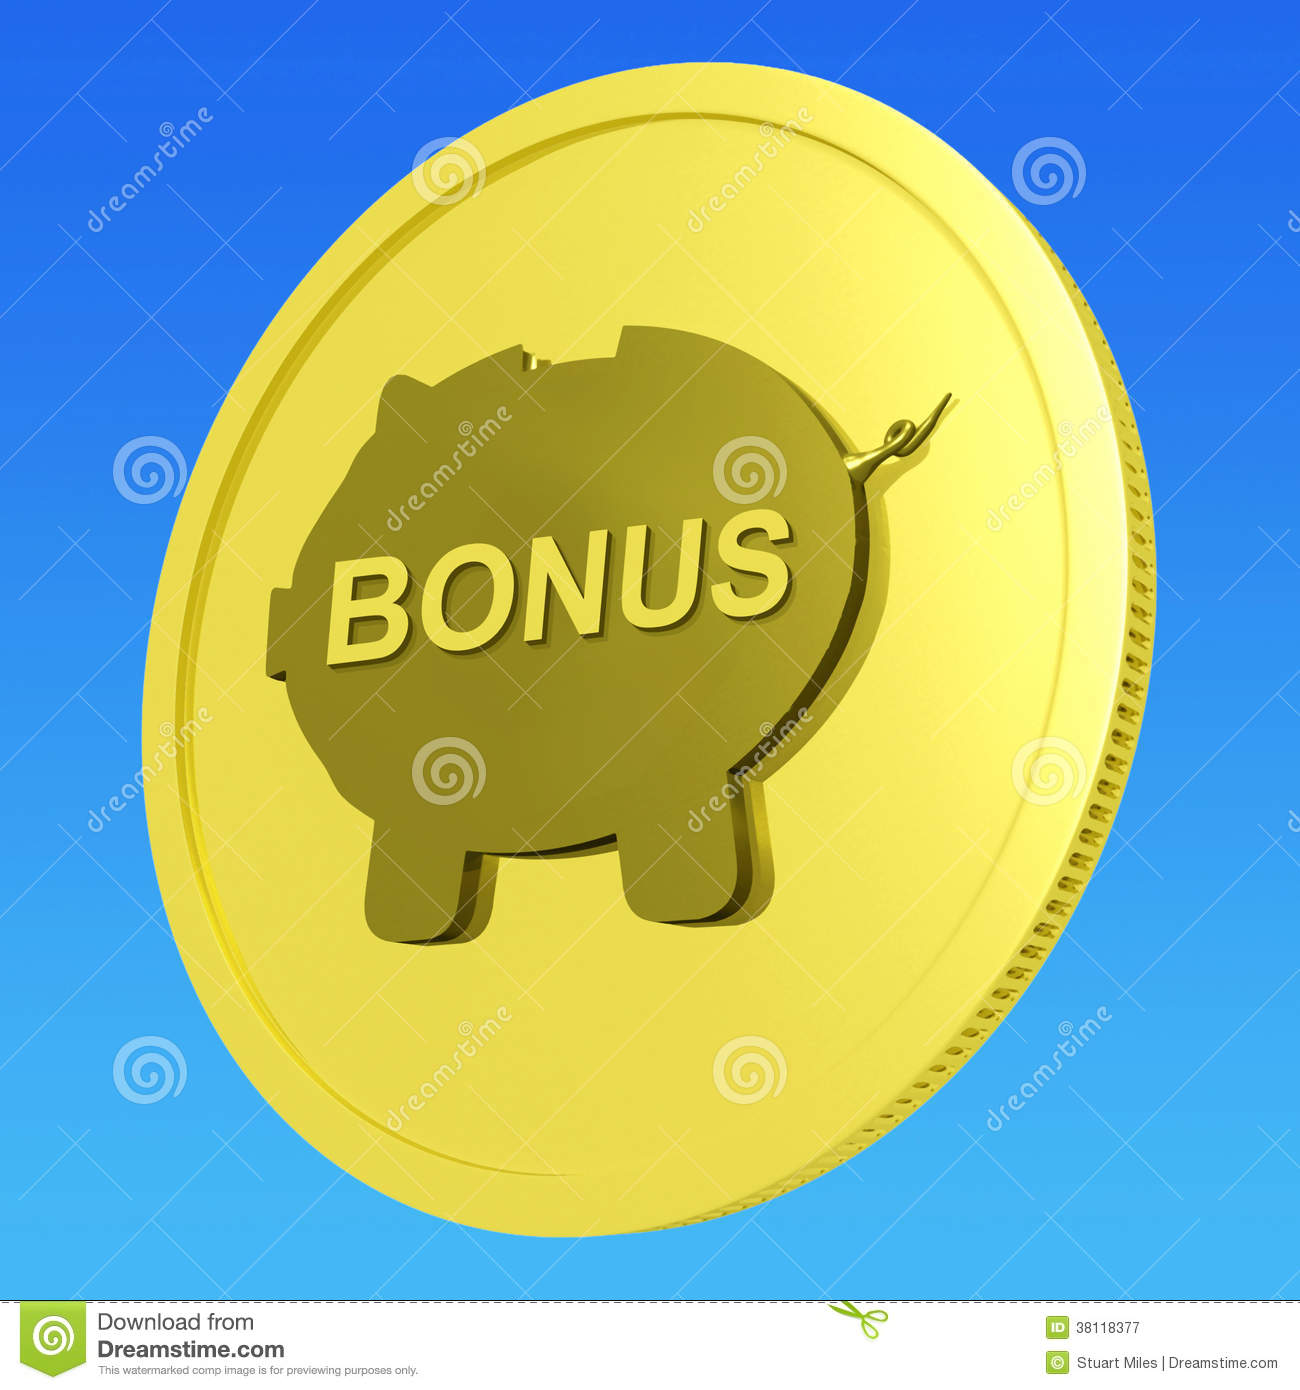 meaning of bonus